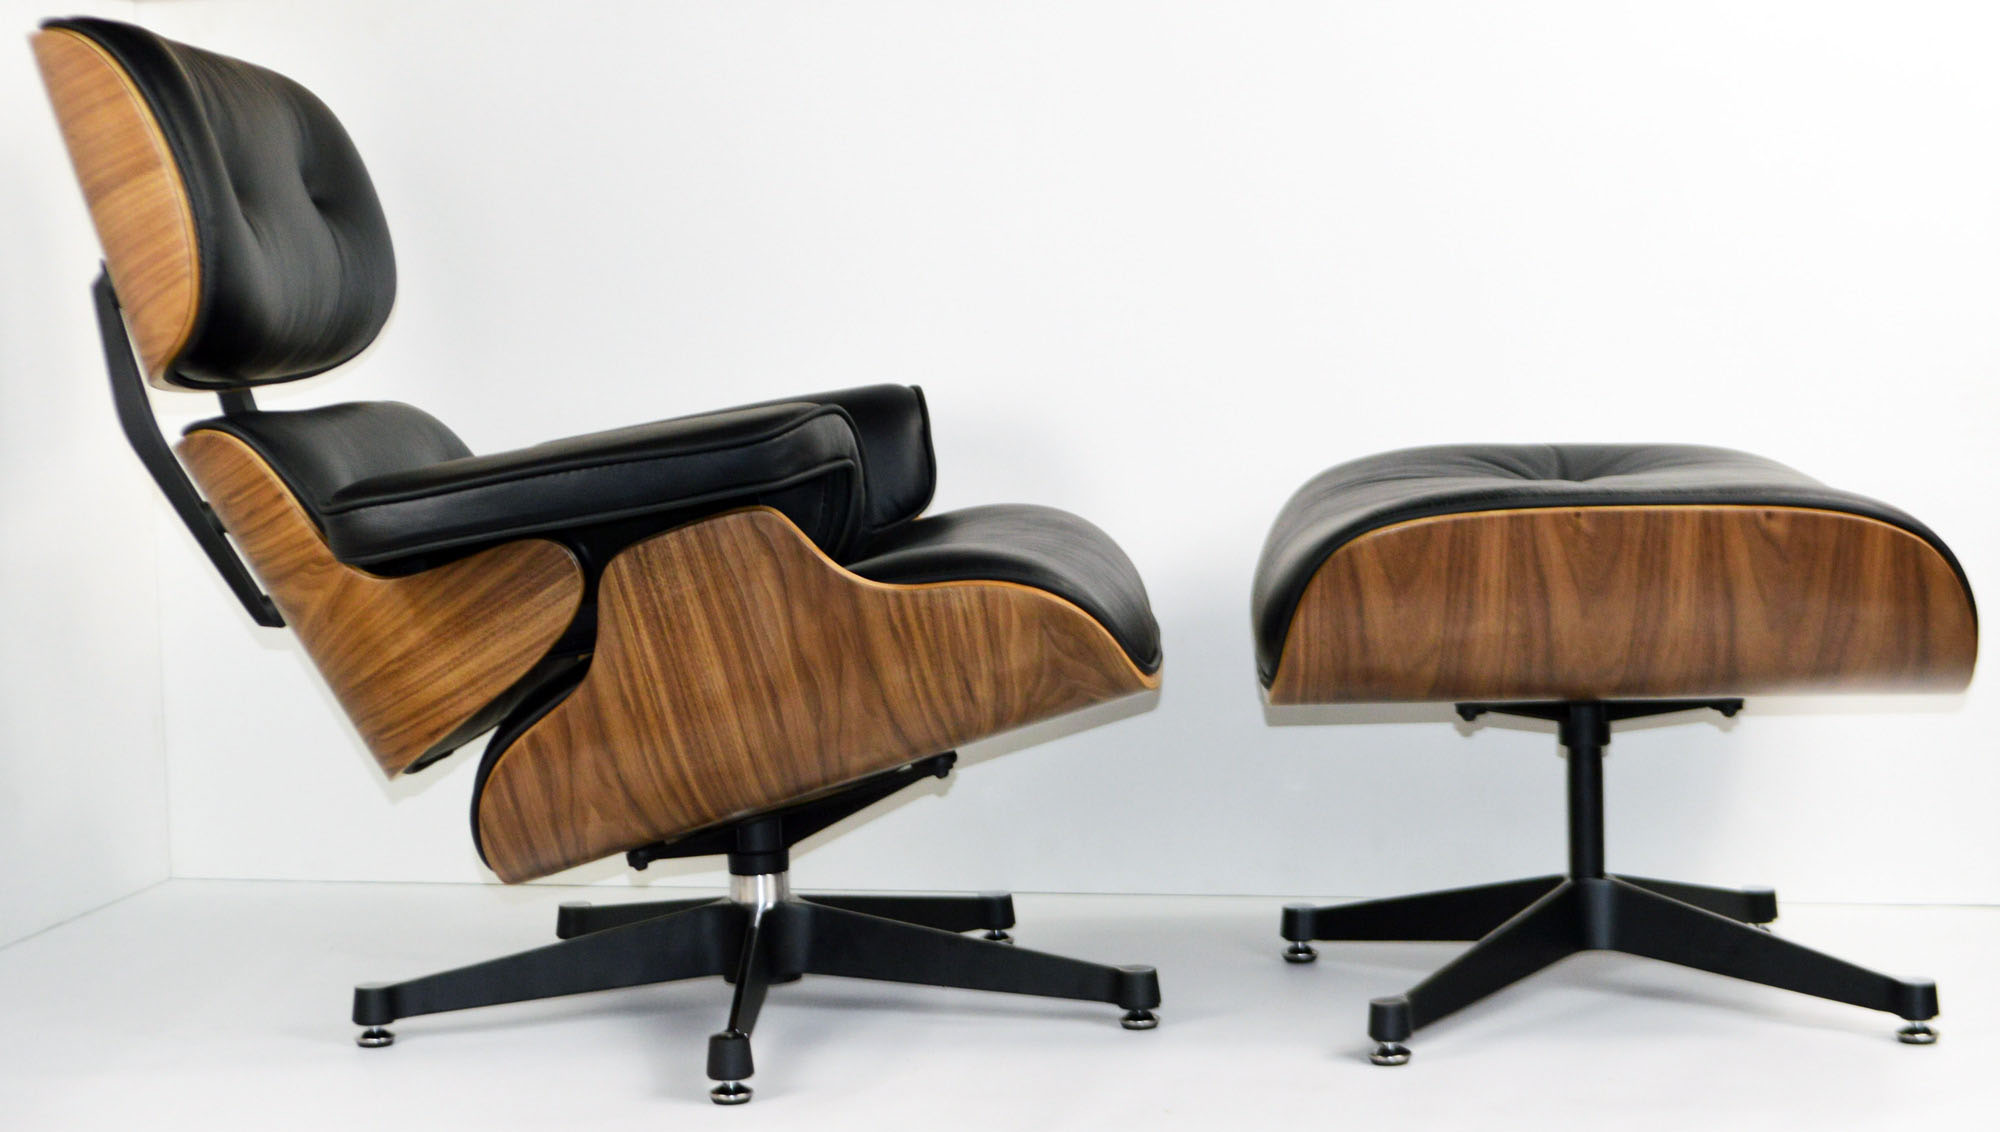 Chair Eames Charles Eames Chair - Walnut - Black Leather - Charles Eames